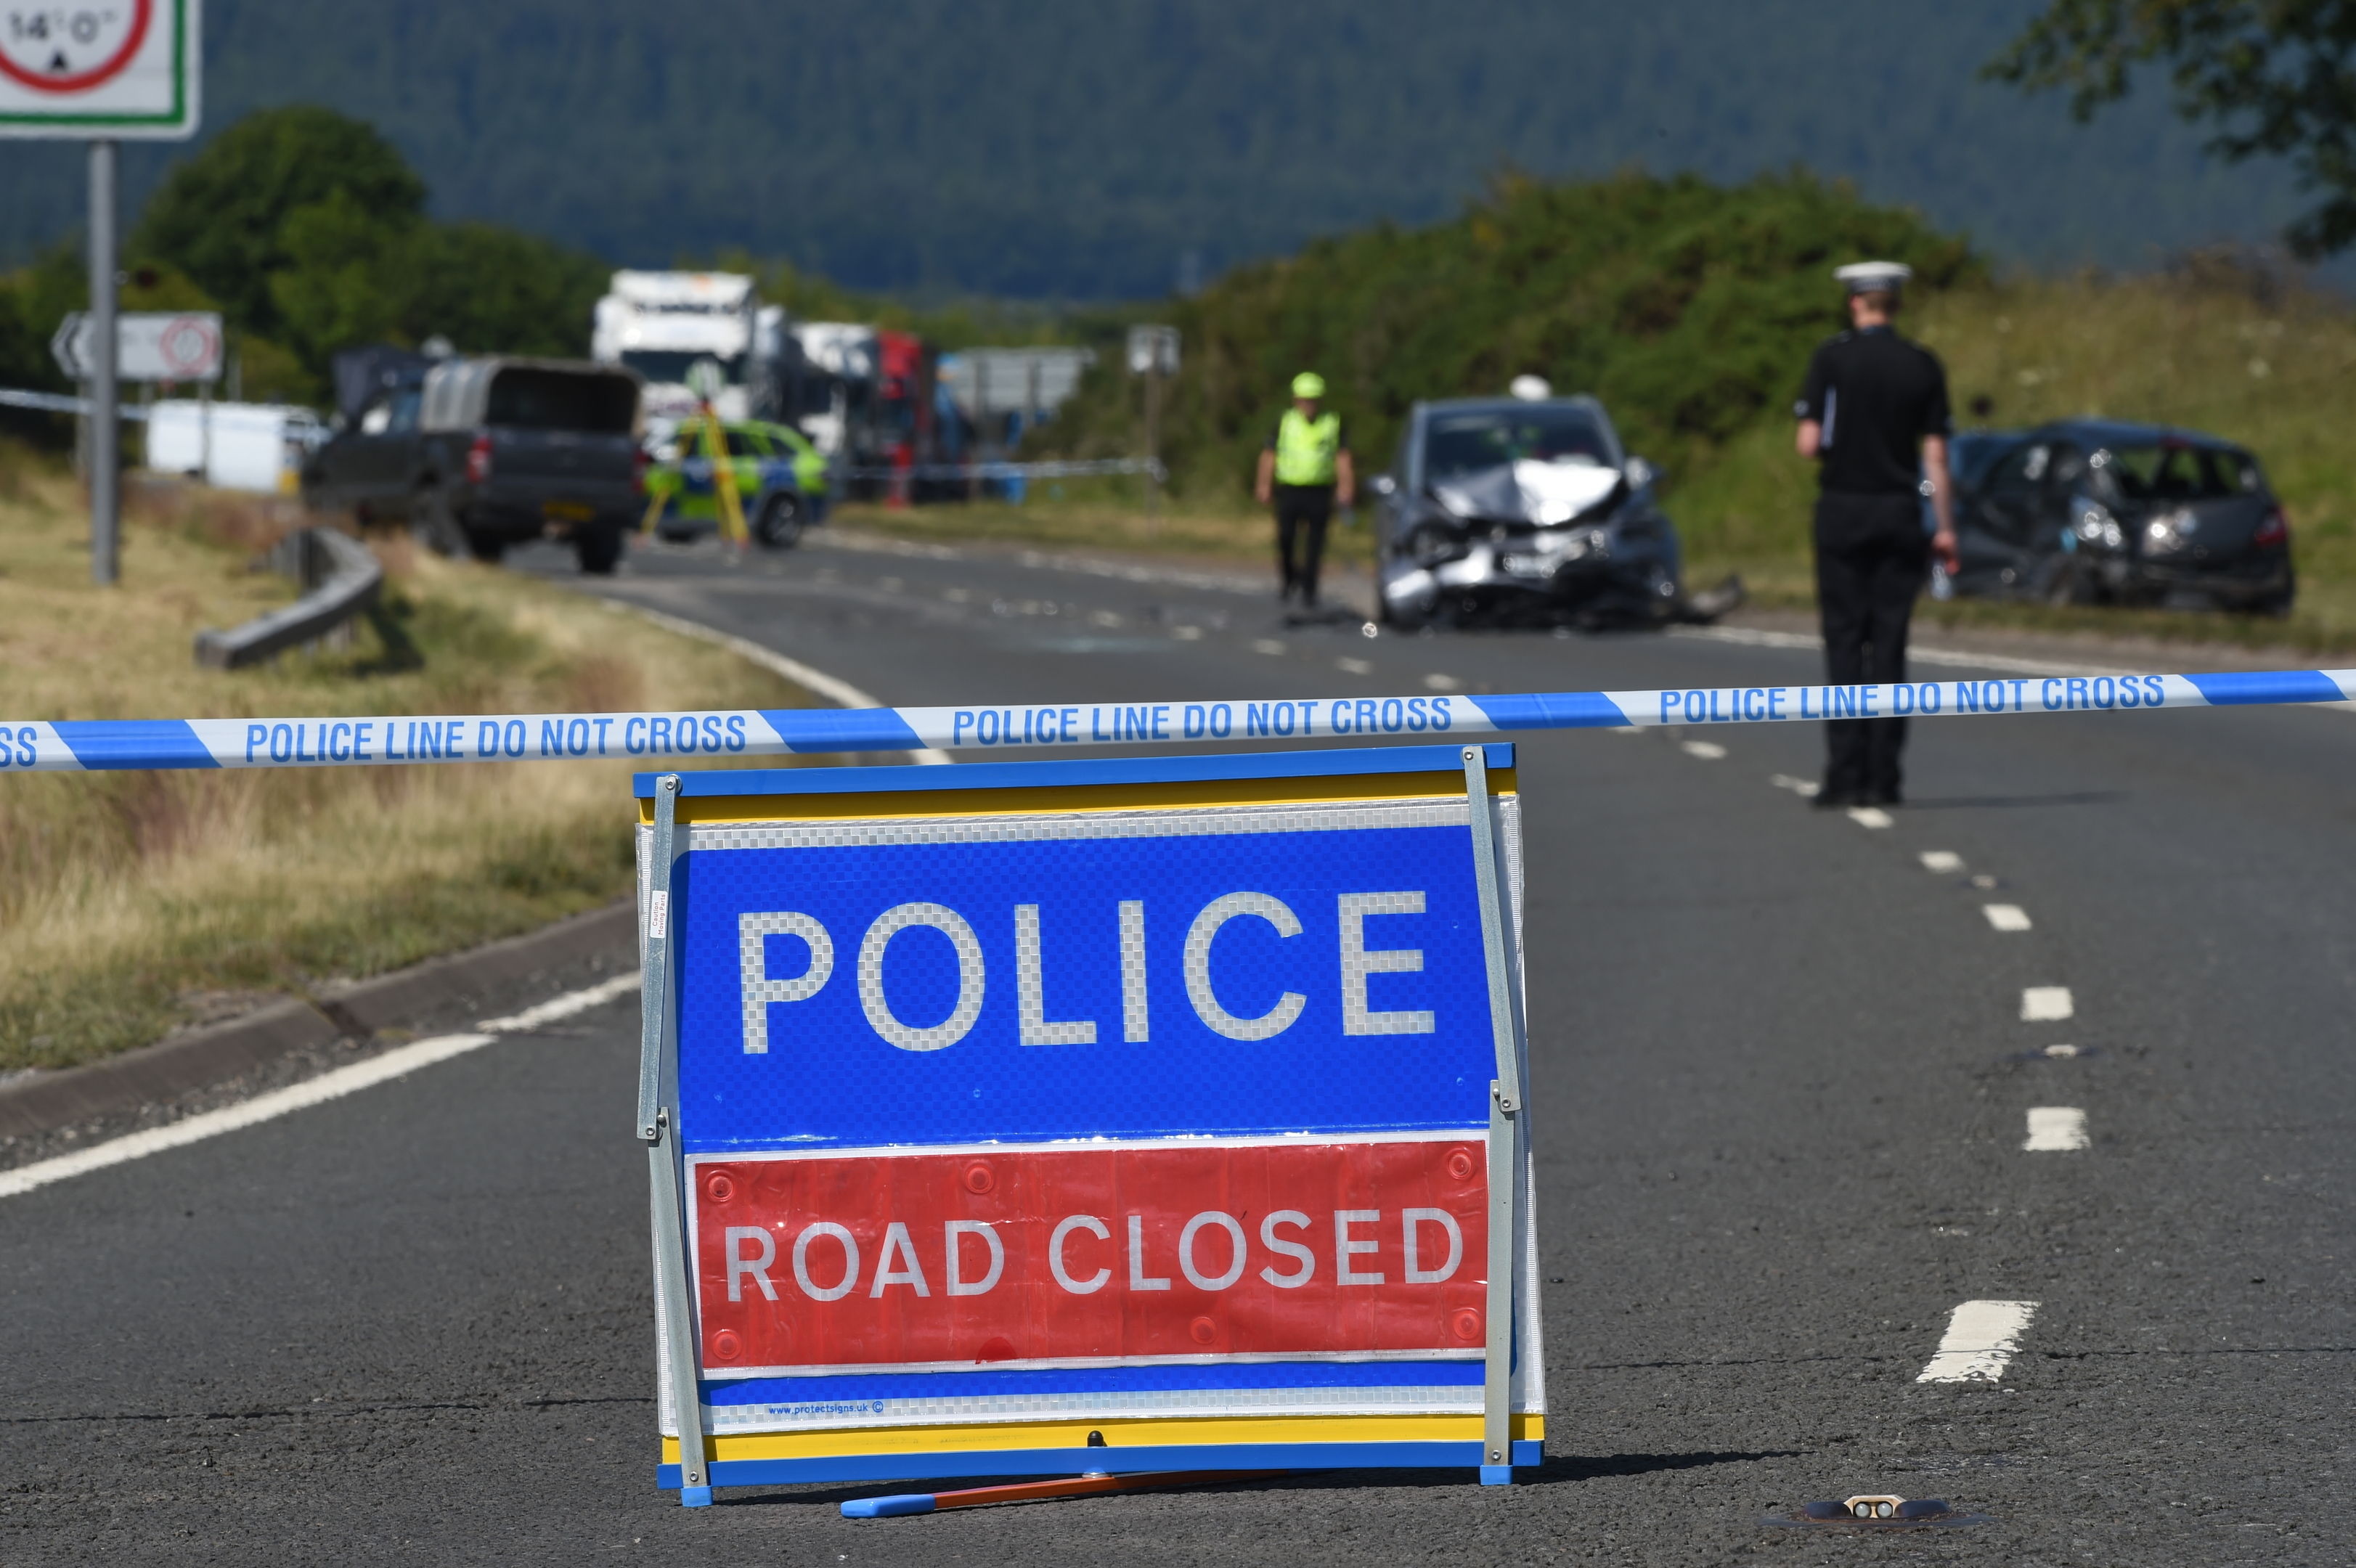 The collision in Easter Ross took place just after midday.